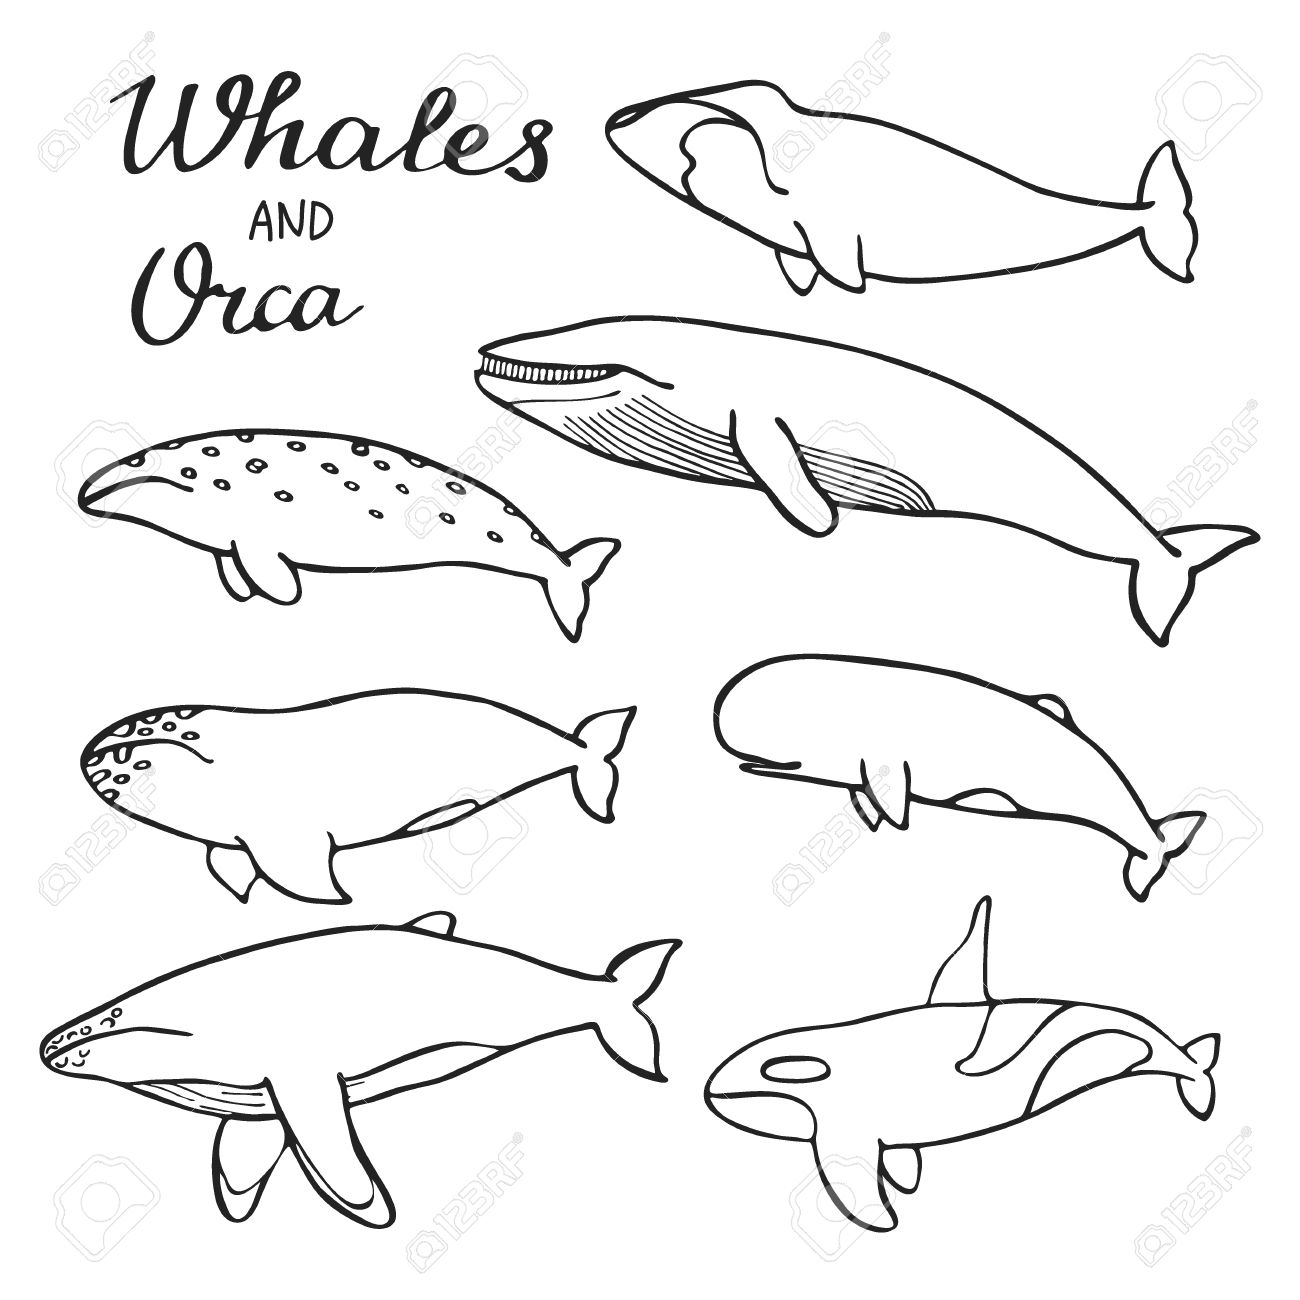 1300x1300 Whales And Orca Set. Hand Drawn Cartoon Collection Of Sea Mammals